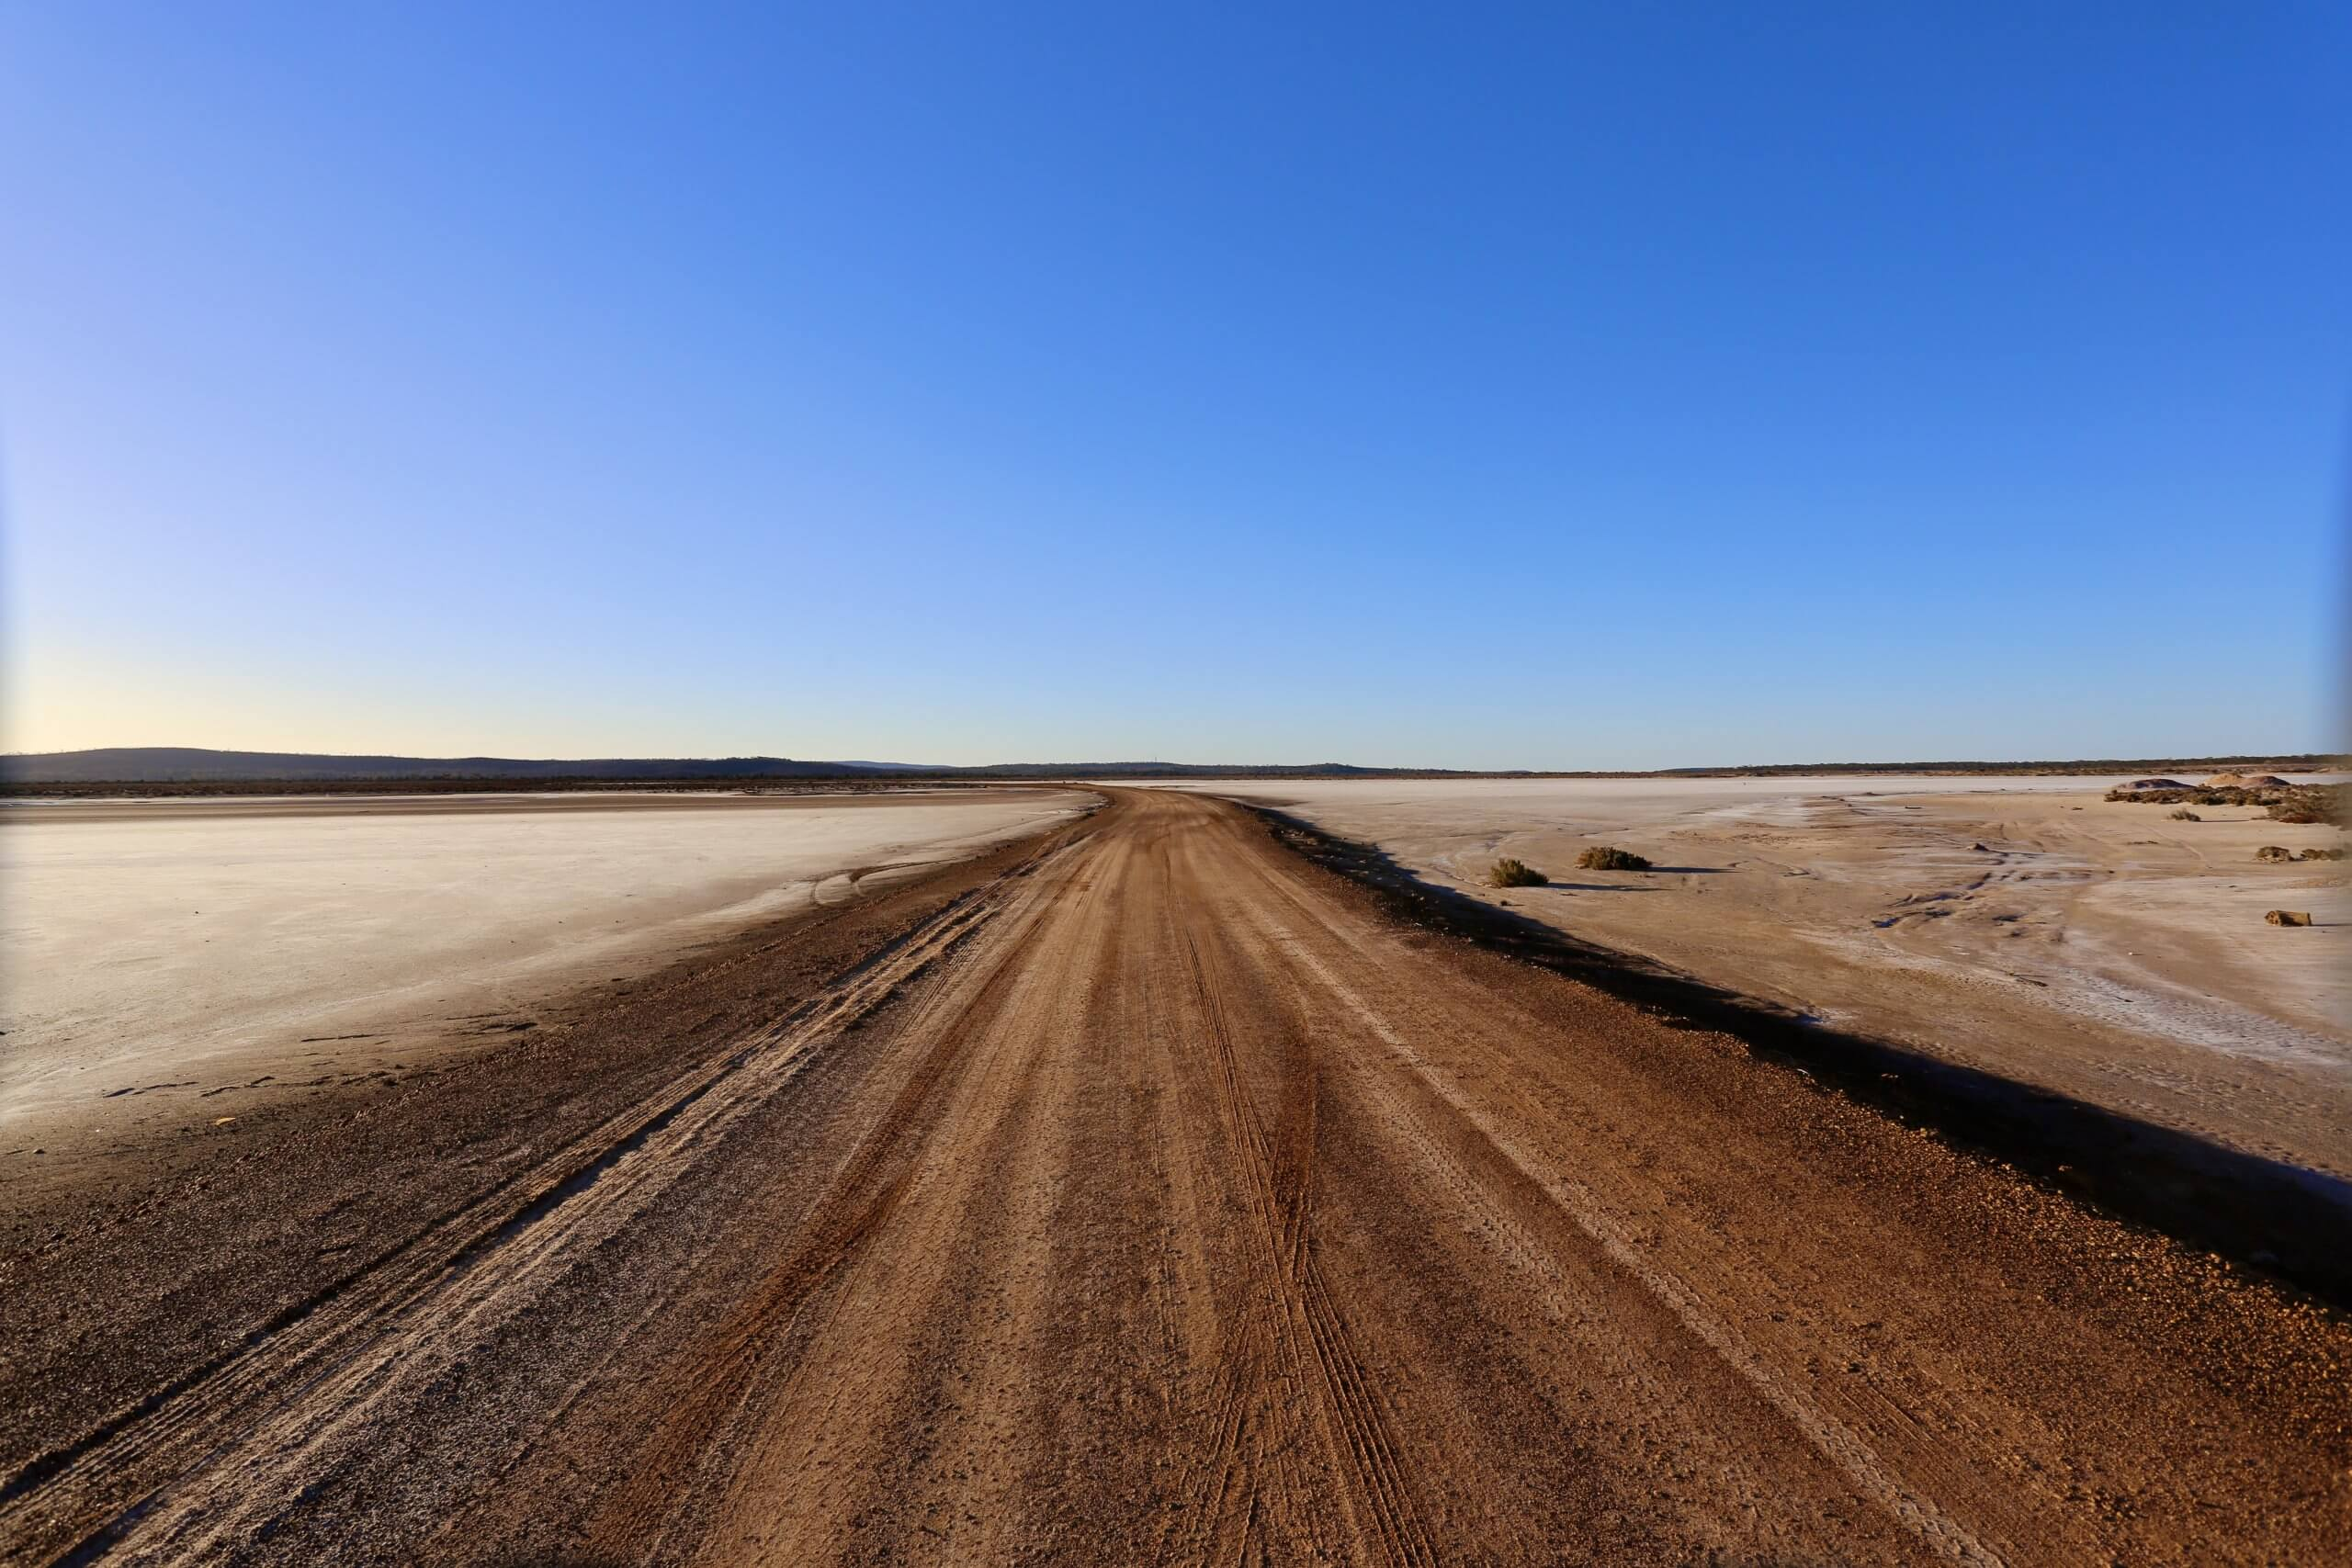 The dried salt lake of Lake Berowa, which lies outside the remote outback town of Norseman.